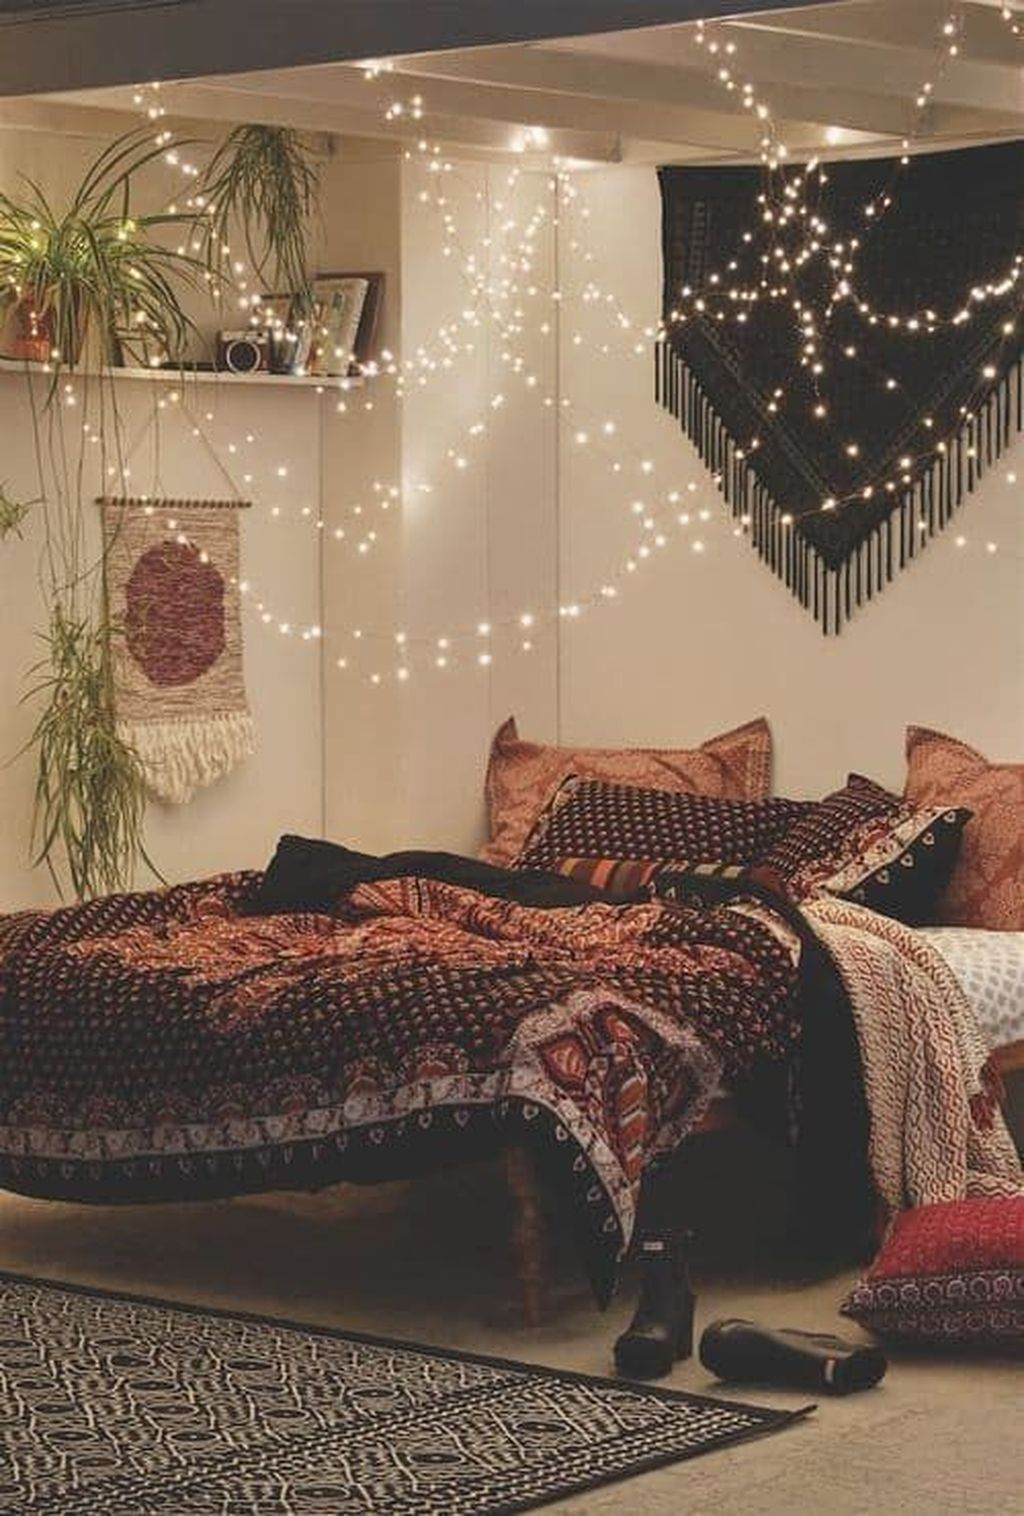 The Best DIY Bedroom Decor Ideas You Have To Try 08